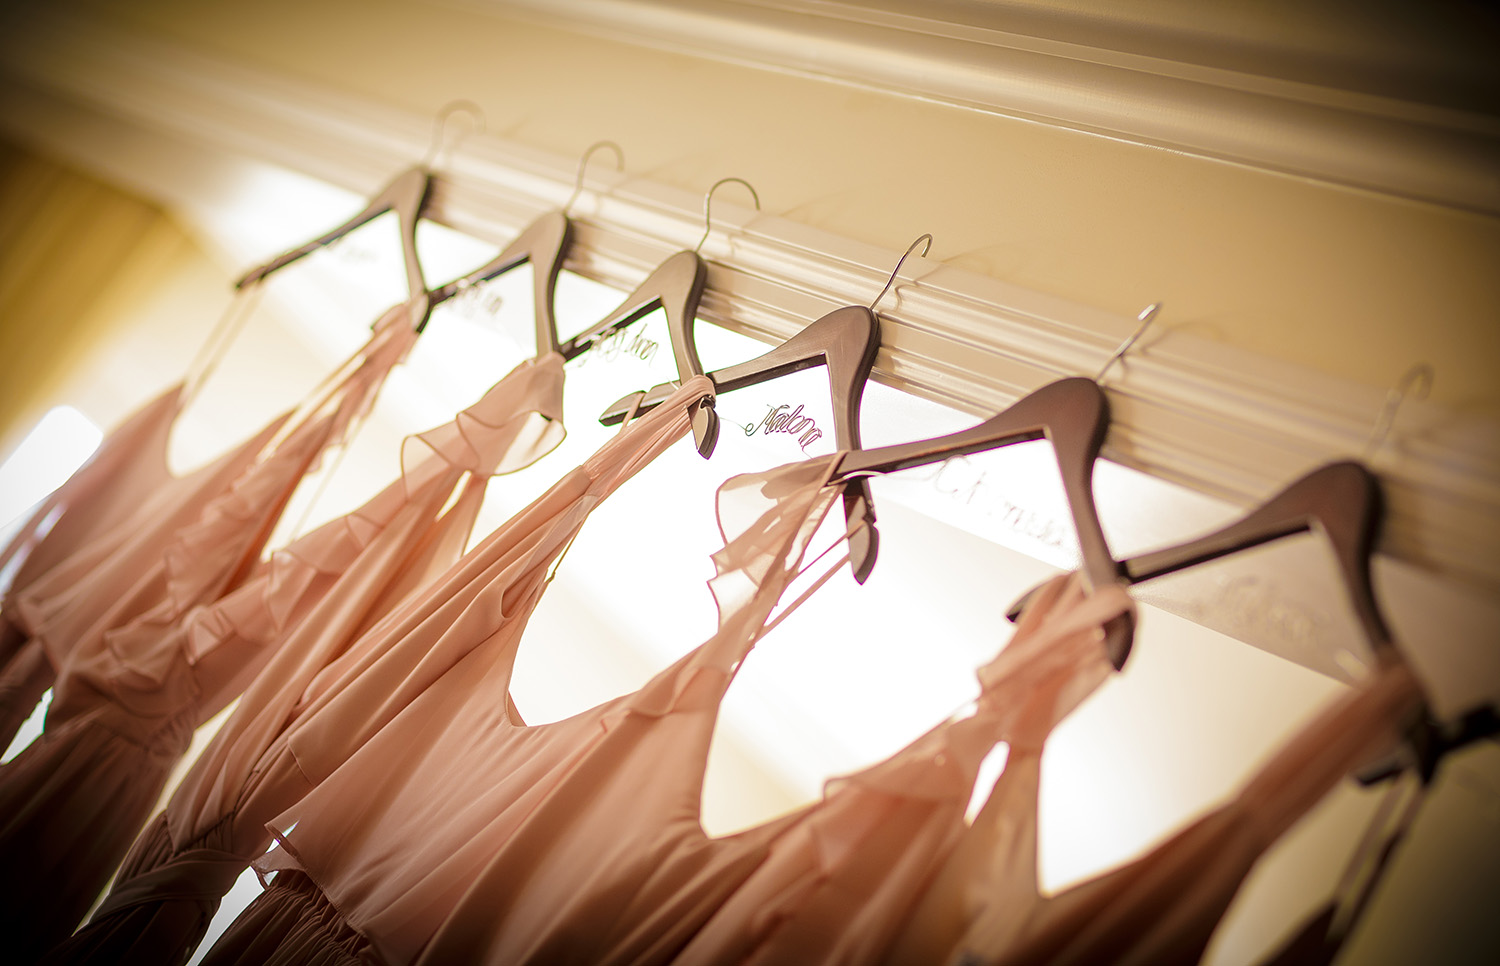 bridesmaid-dresses-hanging-in-window